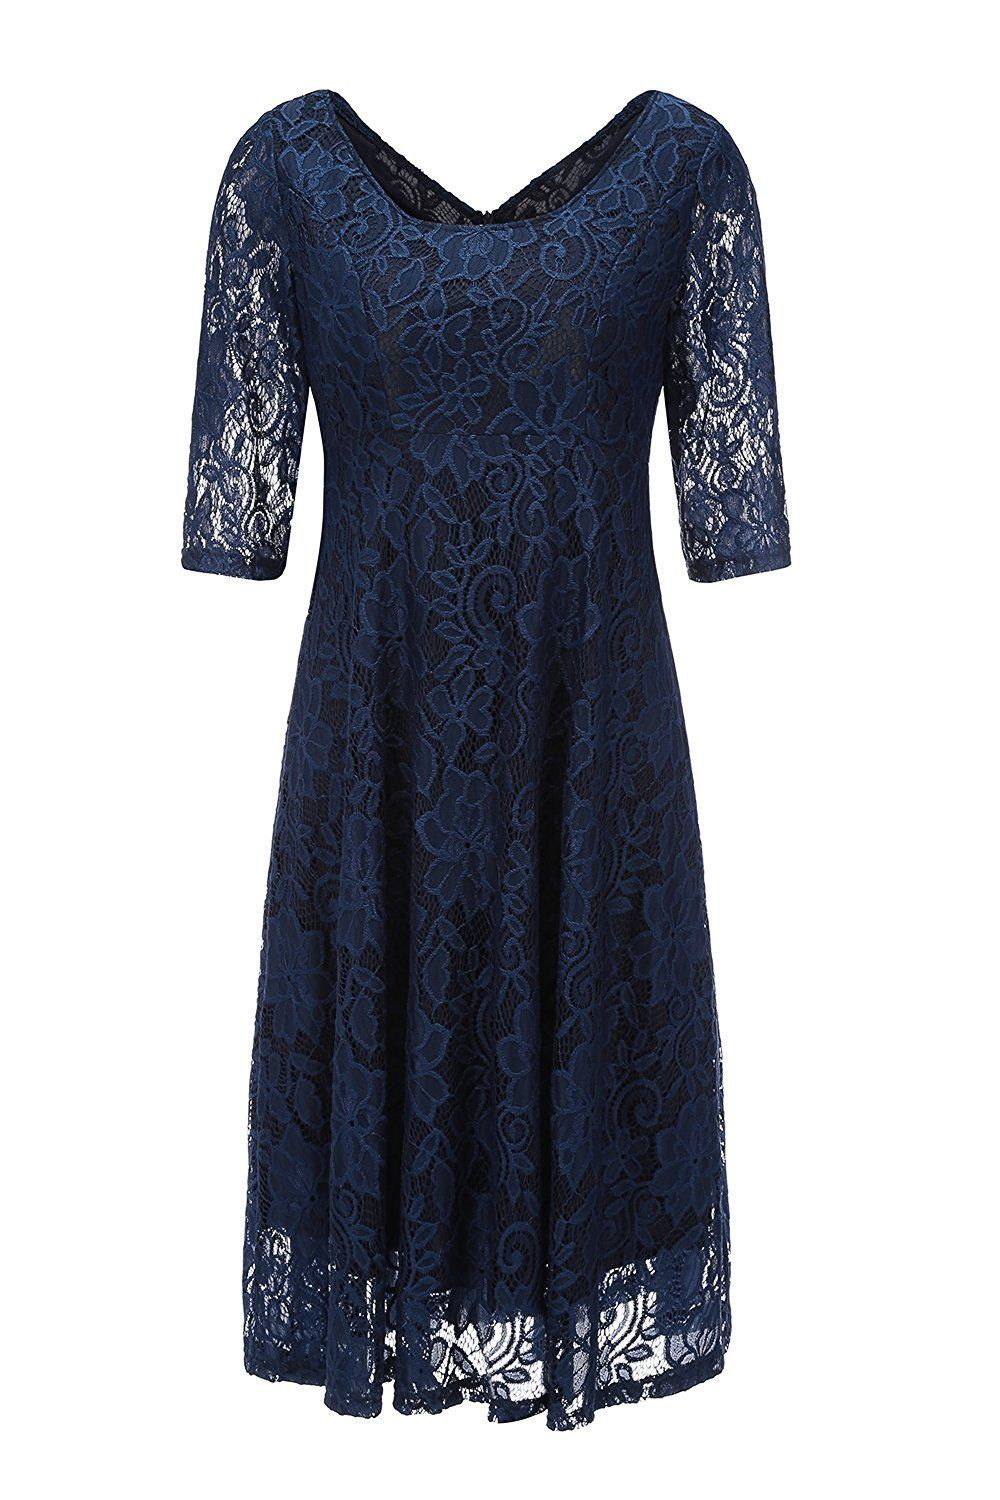 Lace t shirt wedding dress november 2018 Awesome Great SHDRESS Empire Waist Midi Lace Cocktail Dresses With